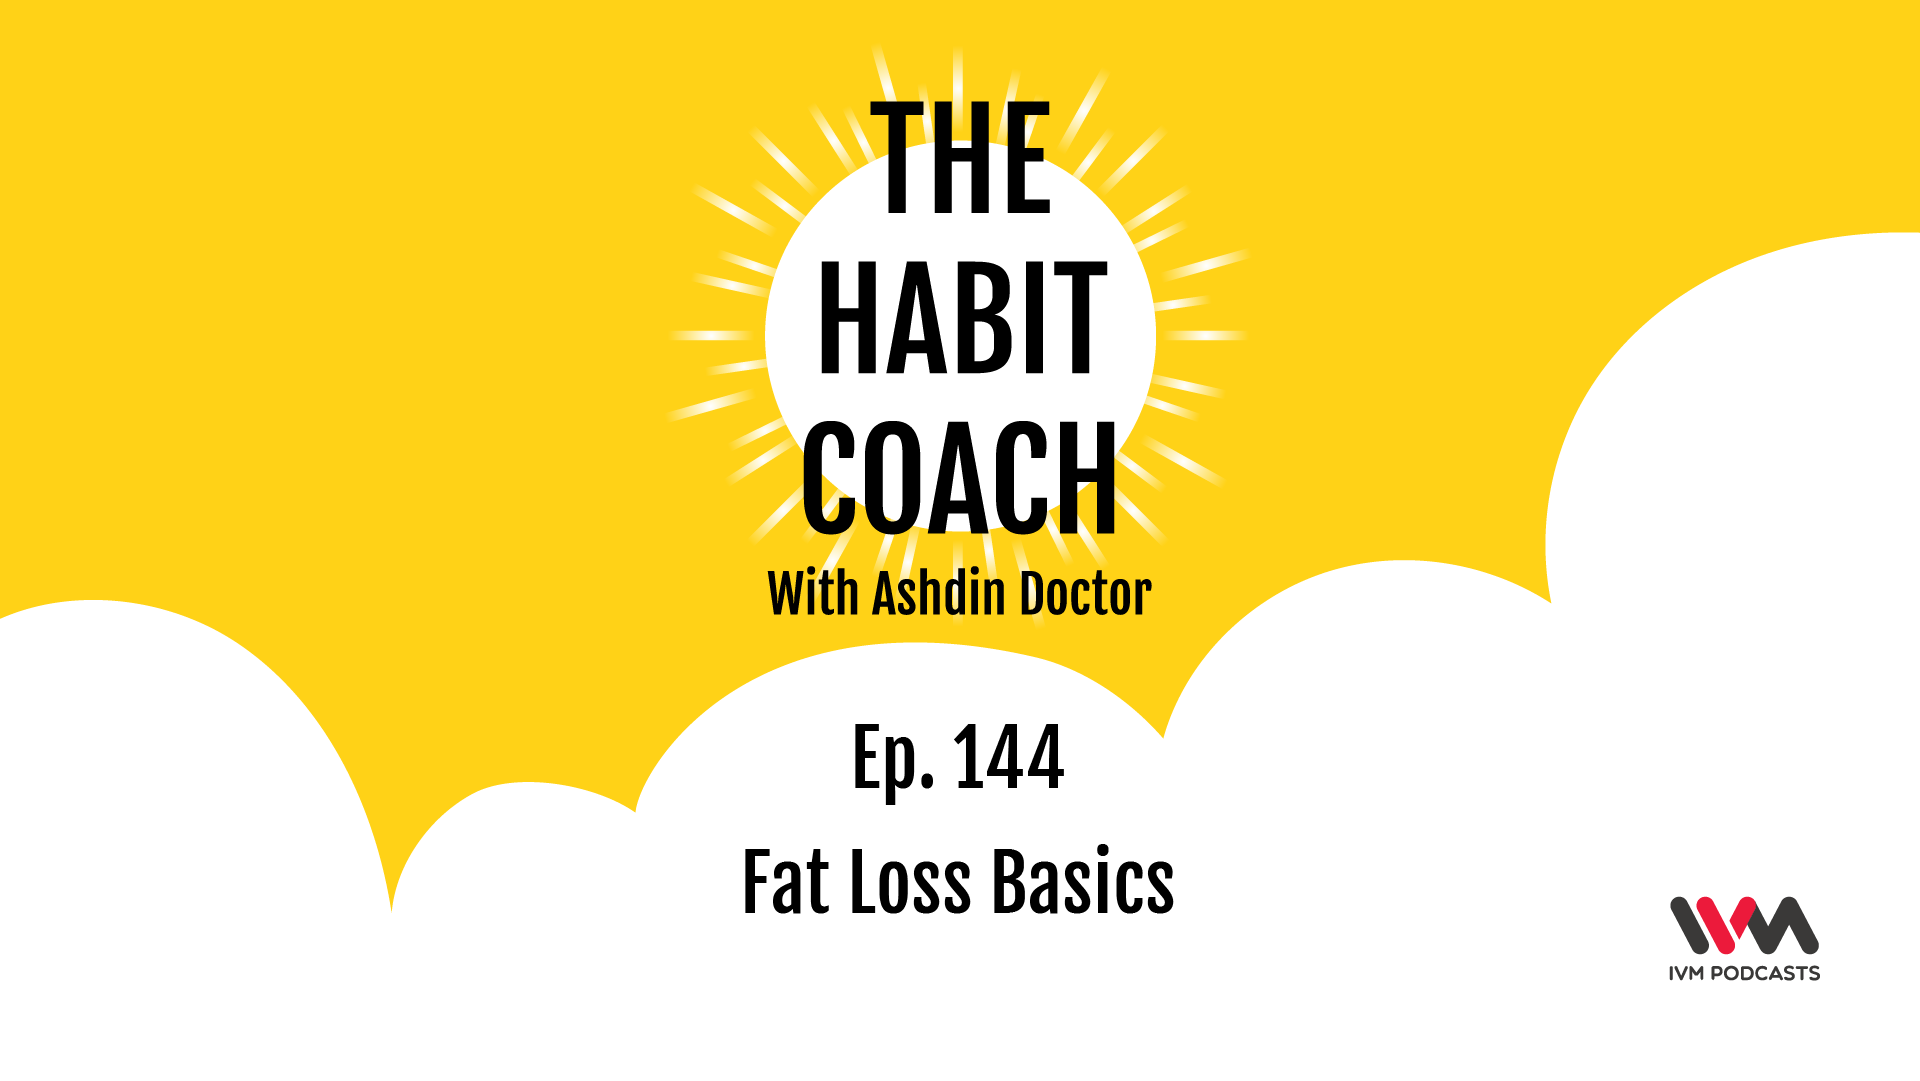 TheHabitCoachEpisode144.png